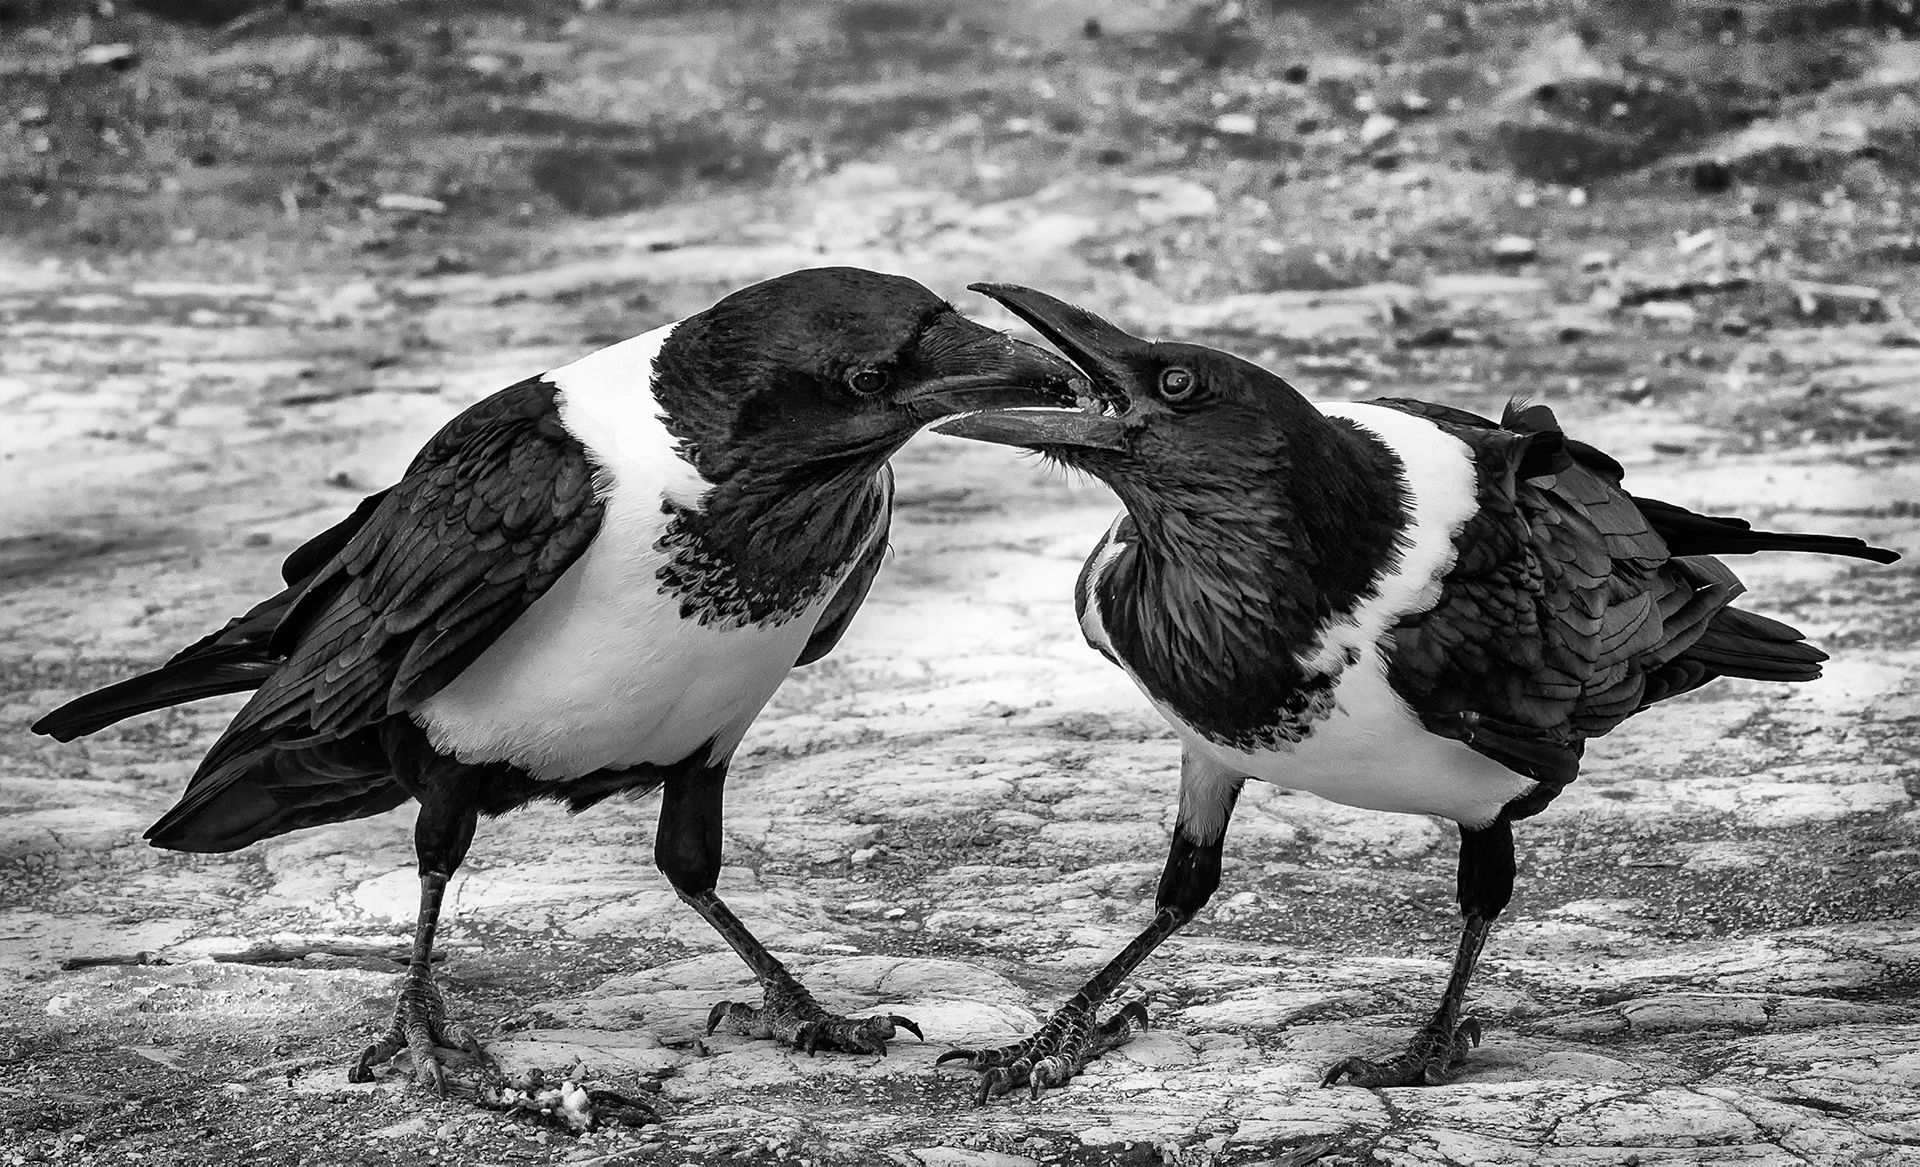 Pied-Crow-Corvus-albus-sharing-lunch-MB-1-Place-by-Pat-Carlson-SR